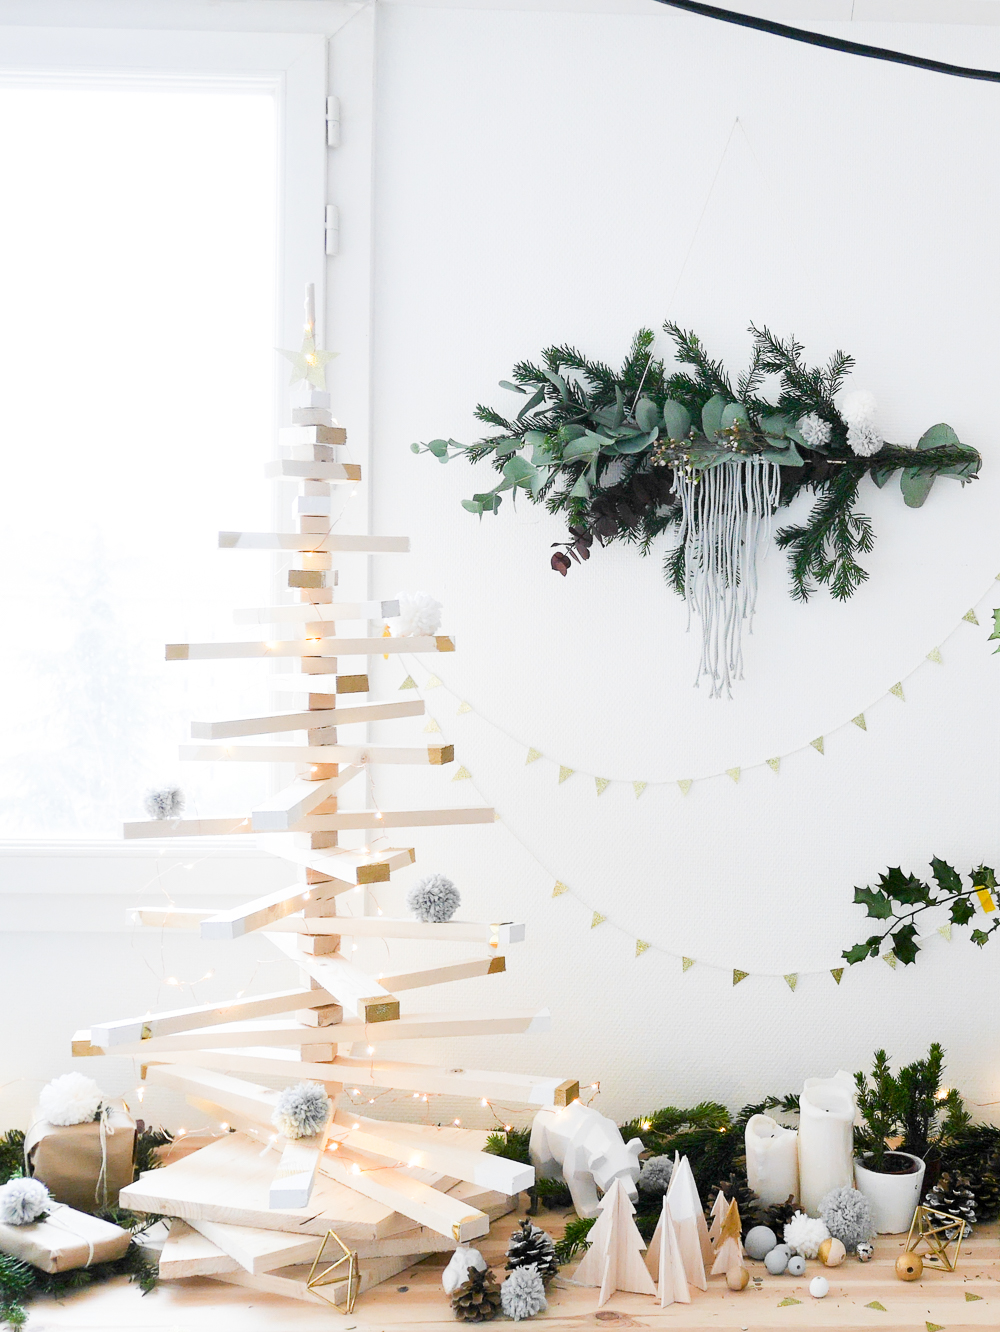 diy-deco-noel-lili-in-wonderland-143